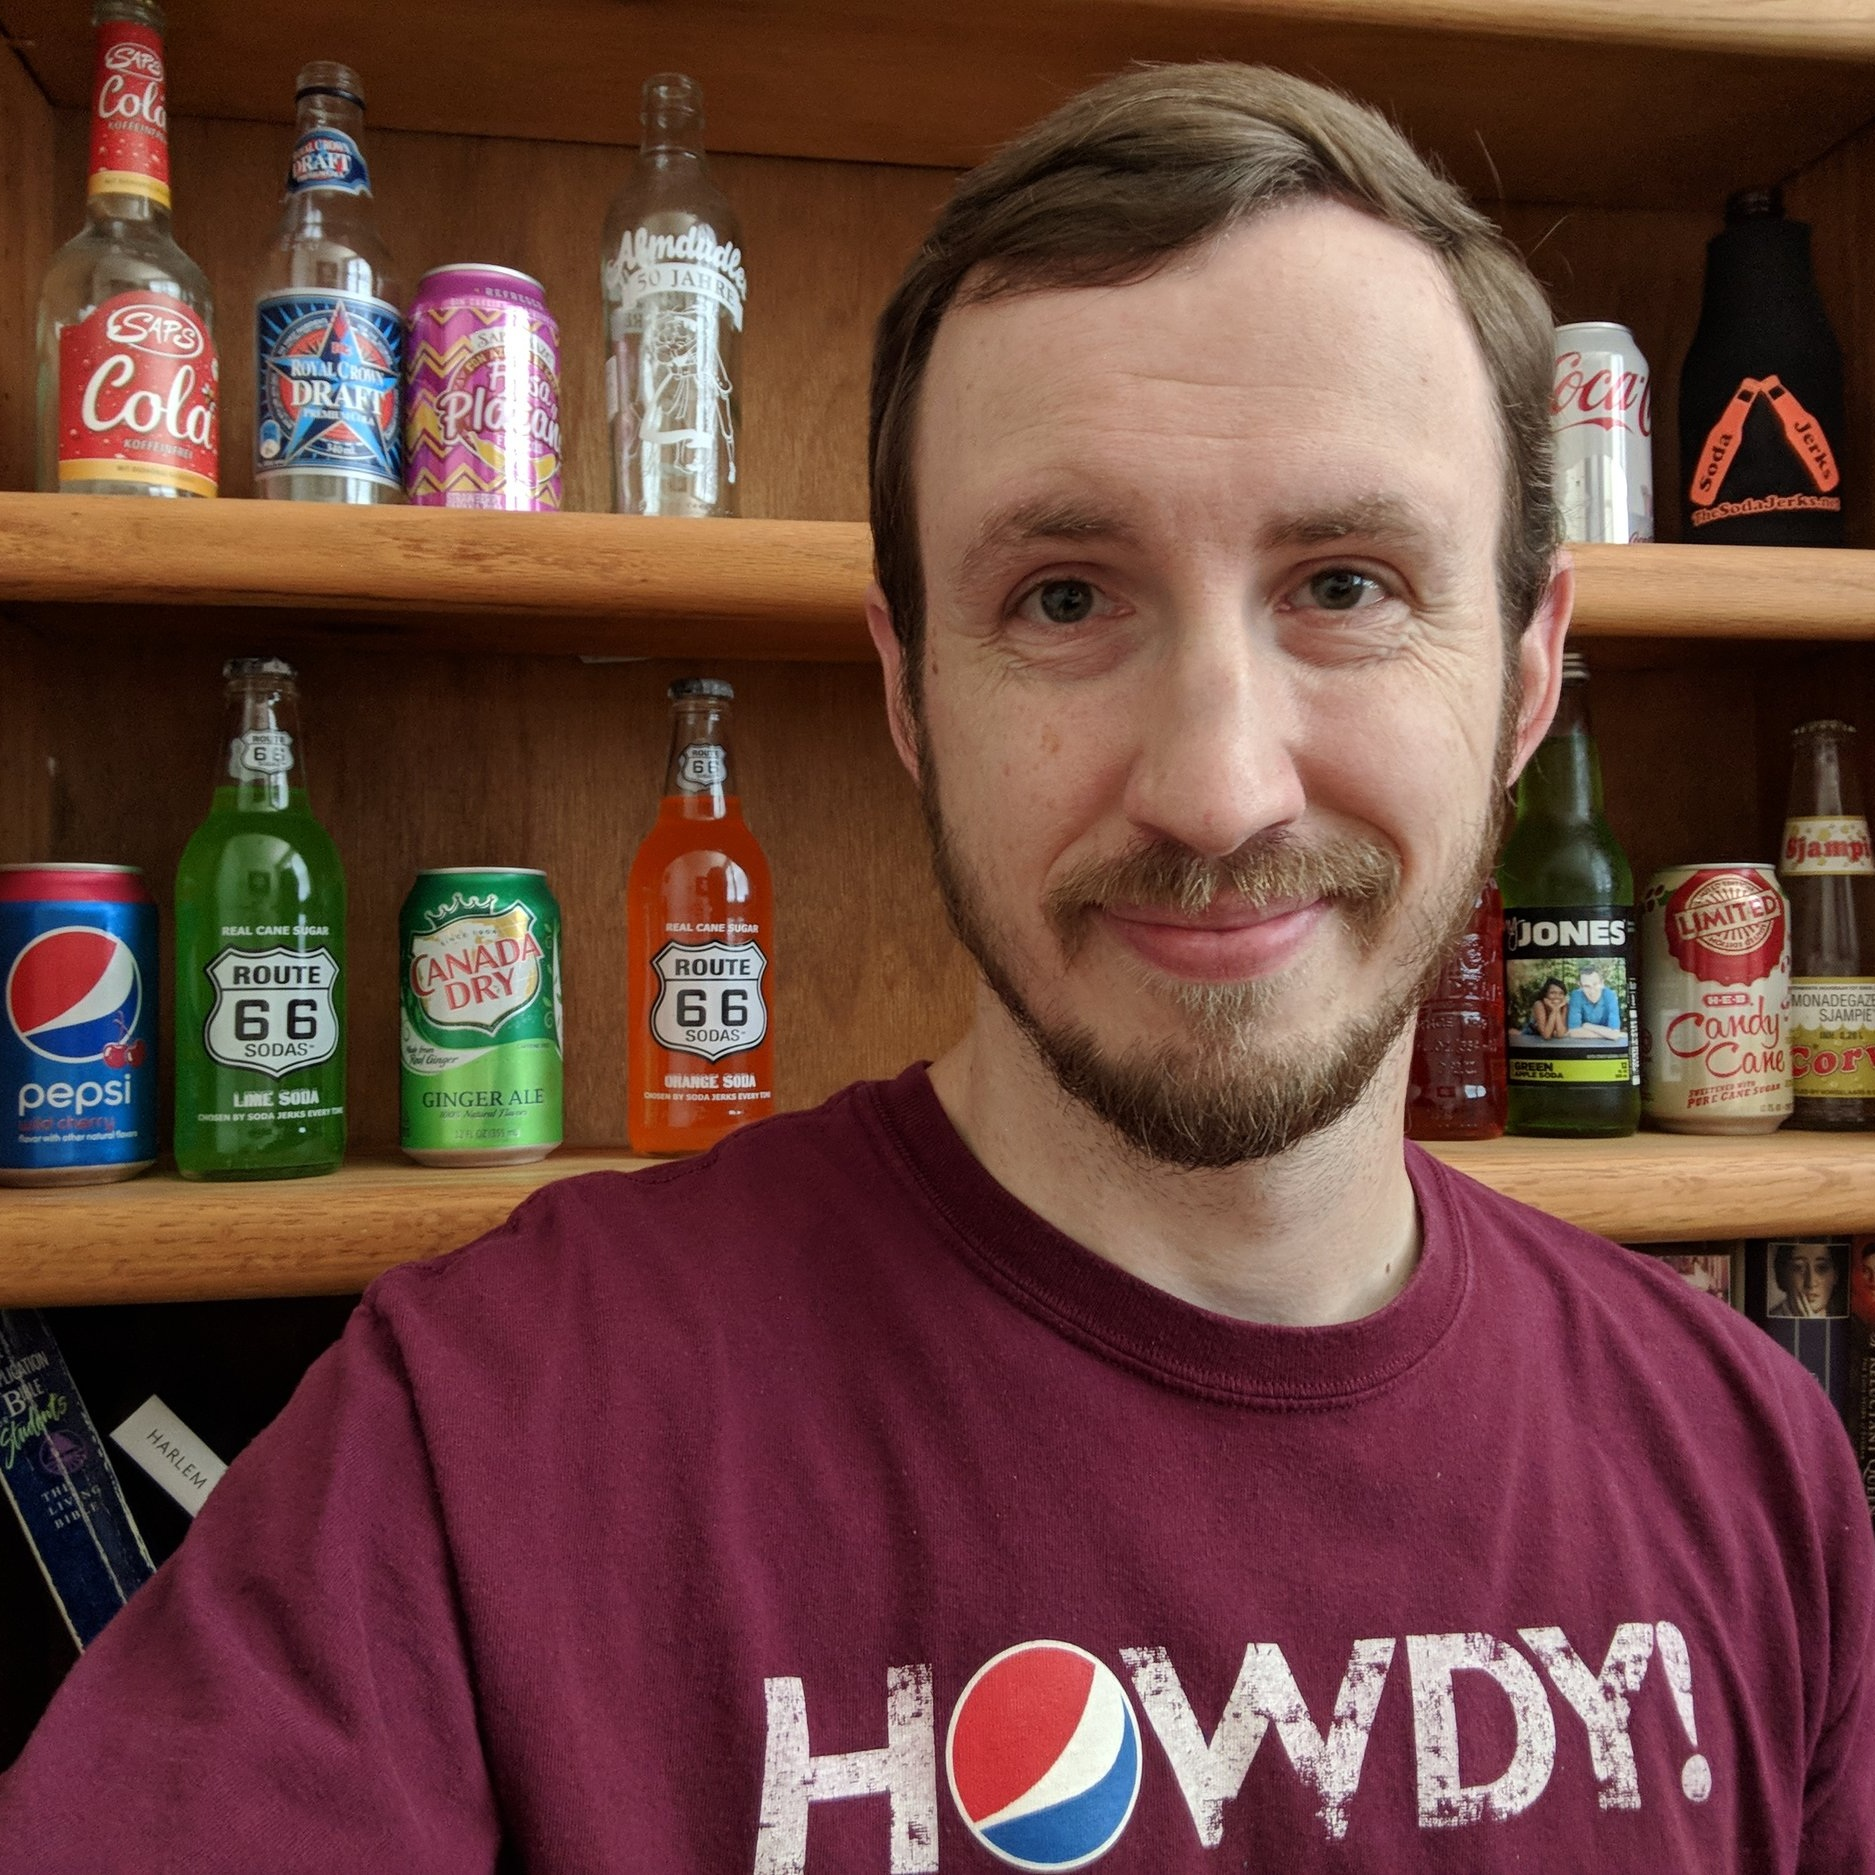 Aaron - Co-Creator and currently sole operator of The Soda Jerks. He's personally had over 600 different sodas, been featured in a Swedish documentary on soda, been interviewed by the CBC about legal soda issues, and typed this description.